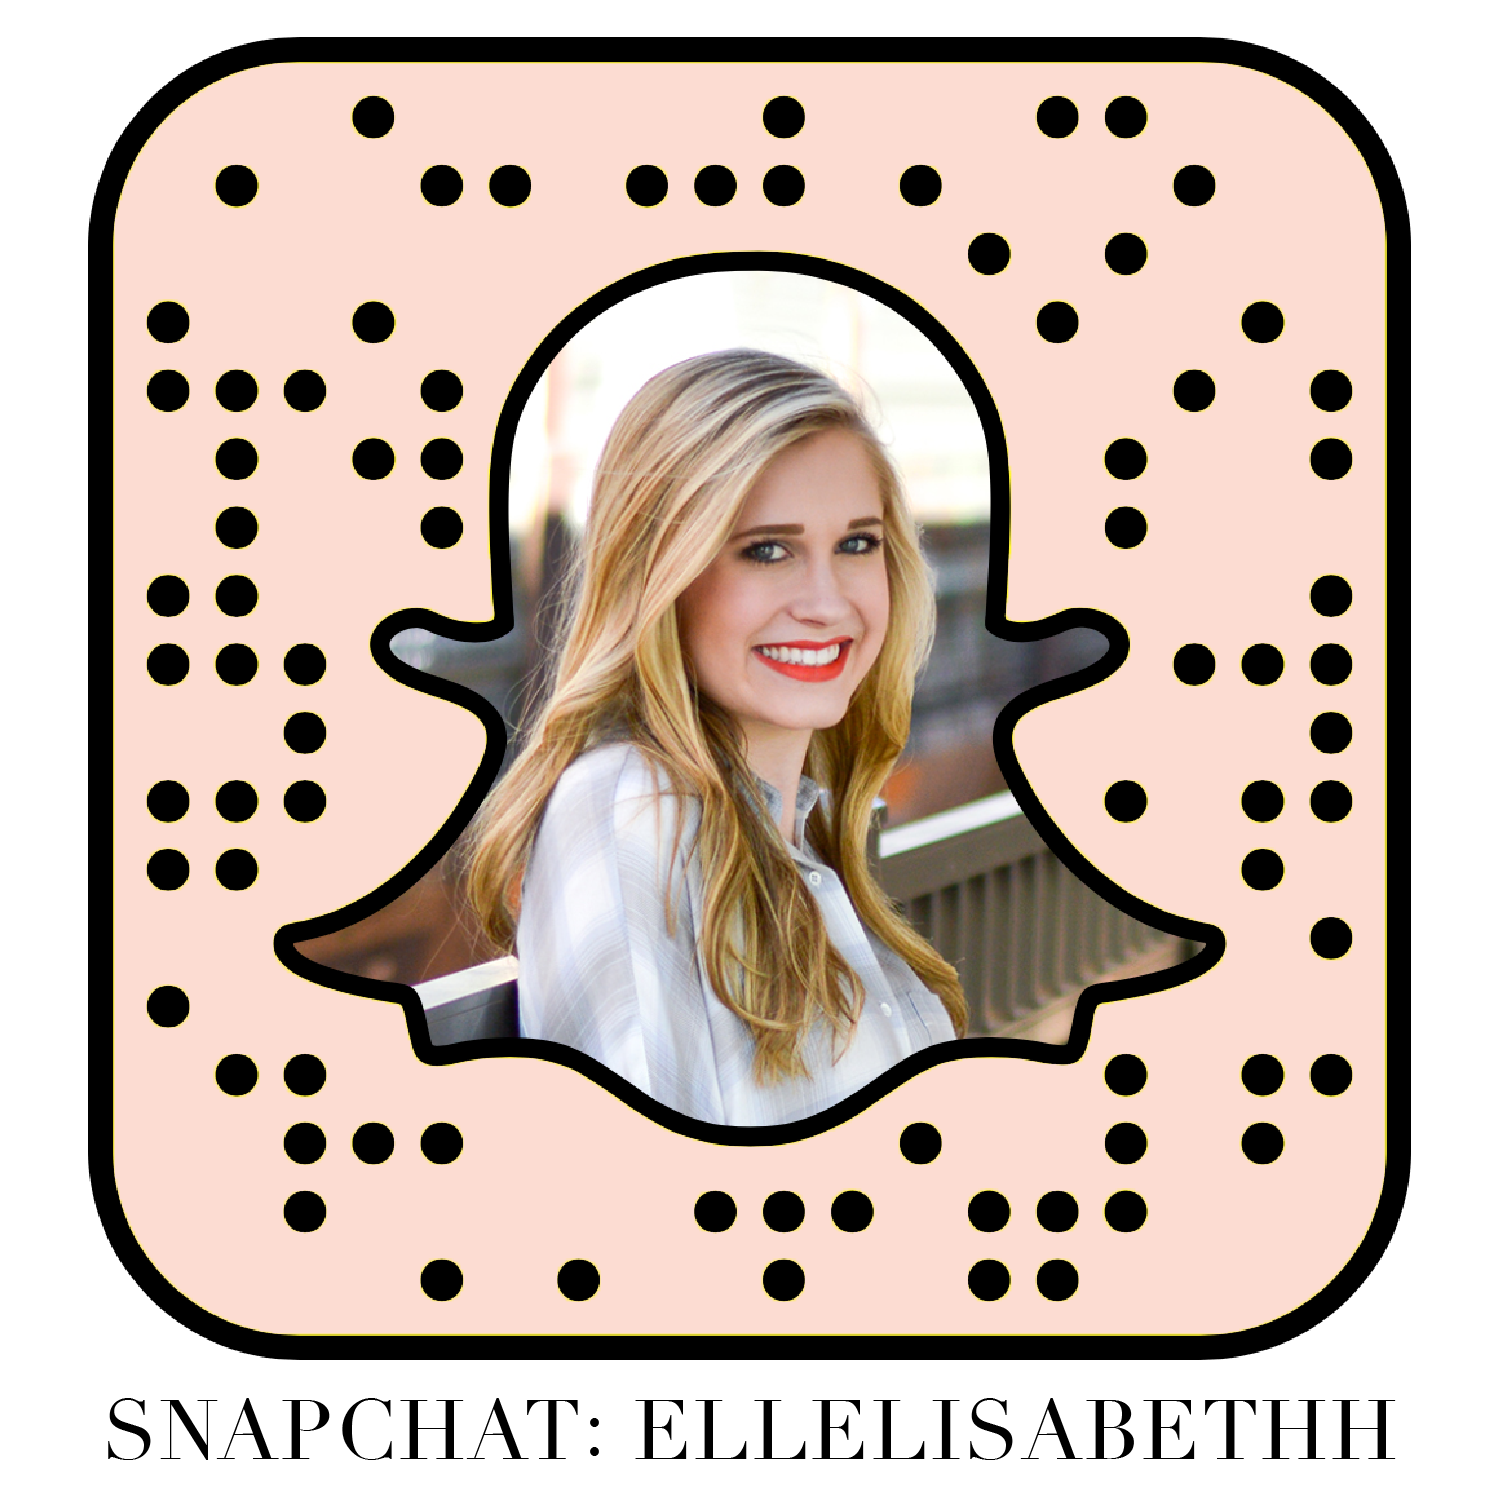 styelled-snapchat-elle-elisabeth-fashion-blog-style-blogger-add-me-on-snap-chat-ellelisabethh-sidebar-01